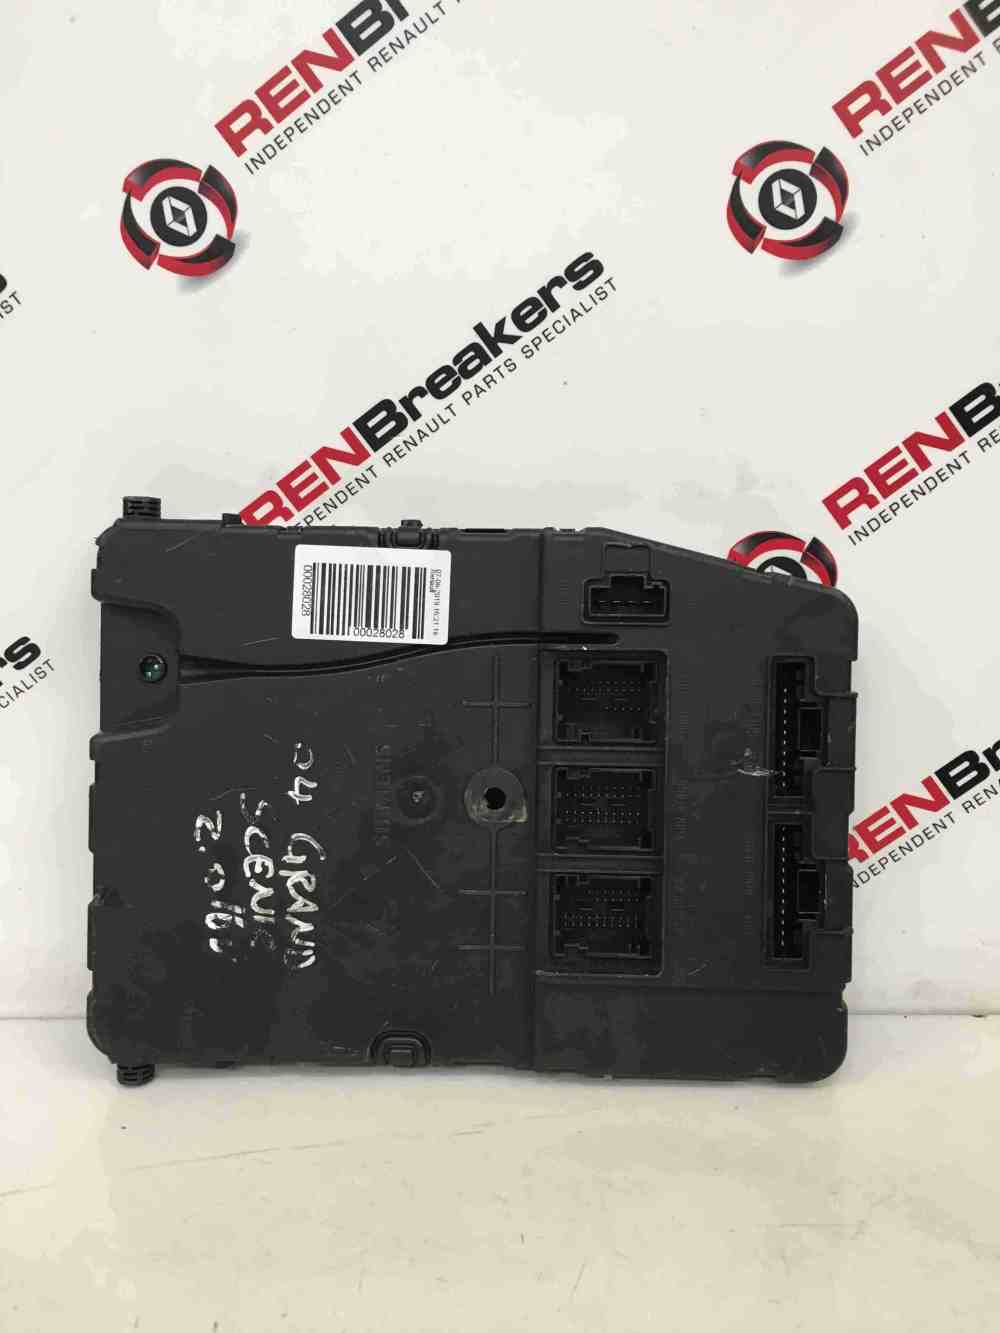 medium resolution of renault megane scenic 2003 2009 2 0 immobiliser uch bcm fuse box 8200351186 store renault breakers used renault car parts spares specialist